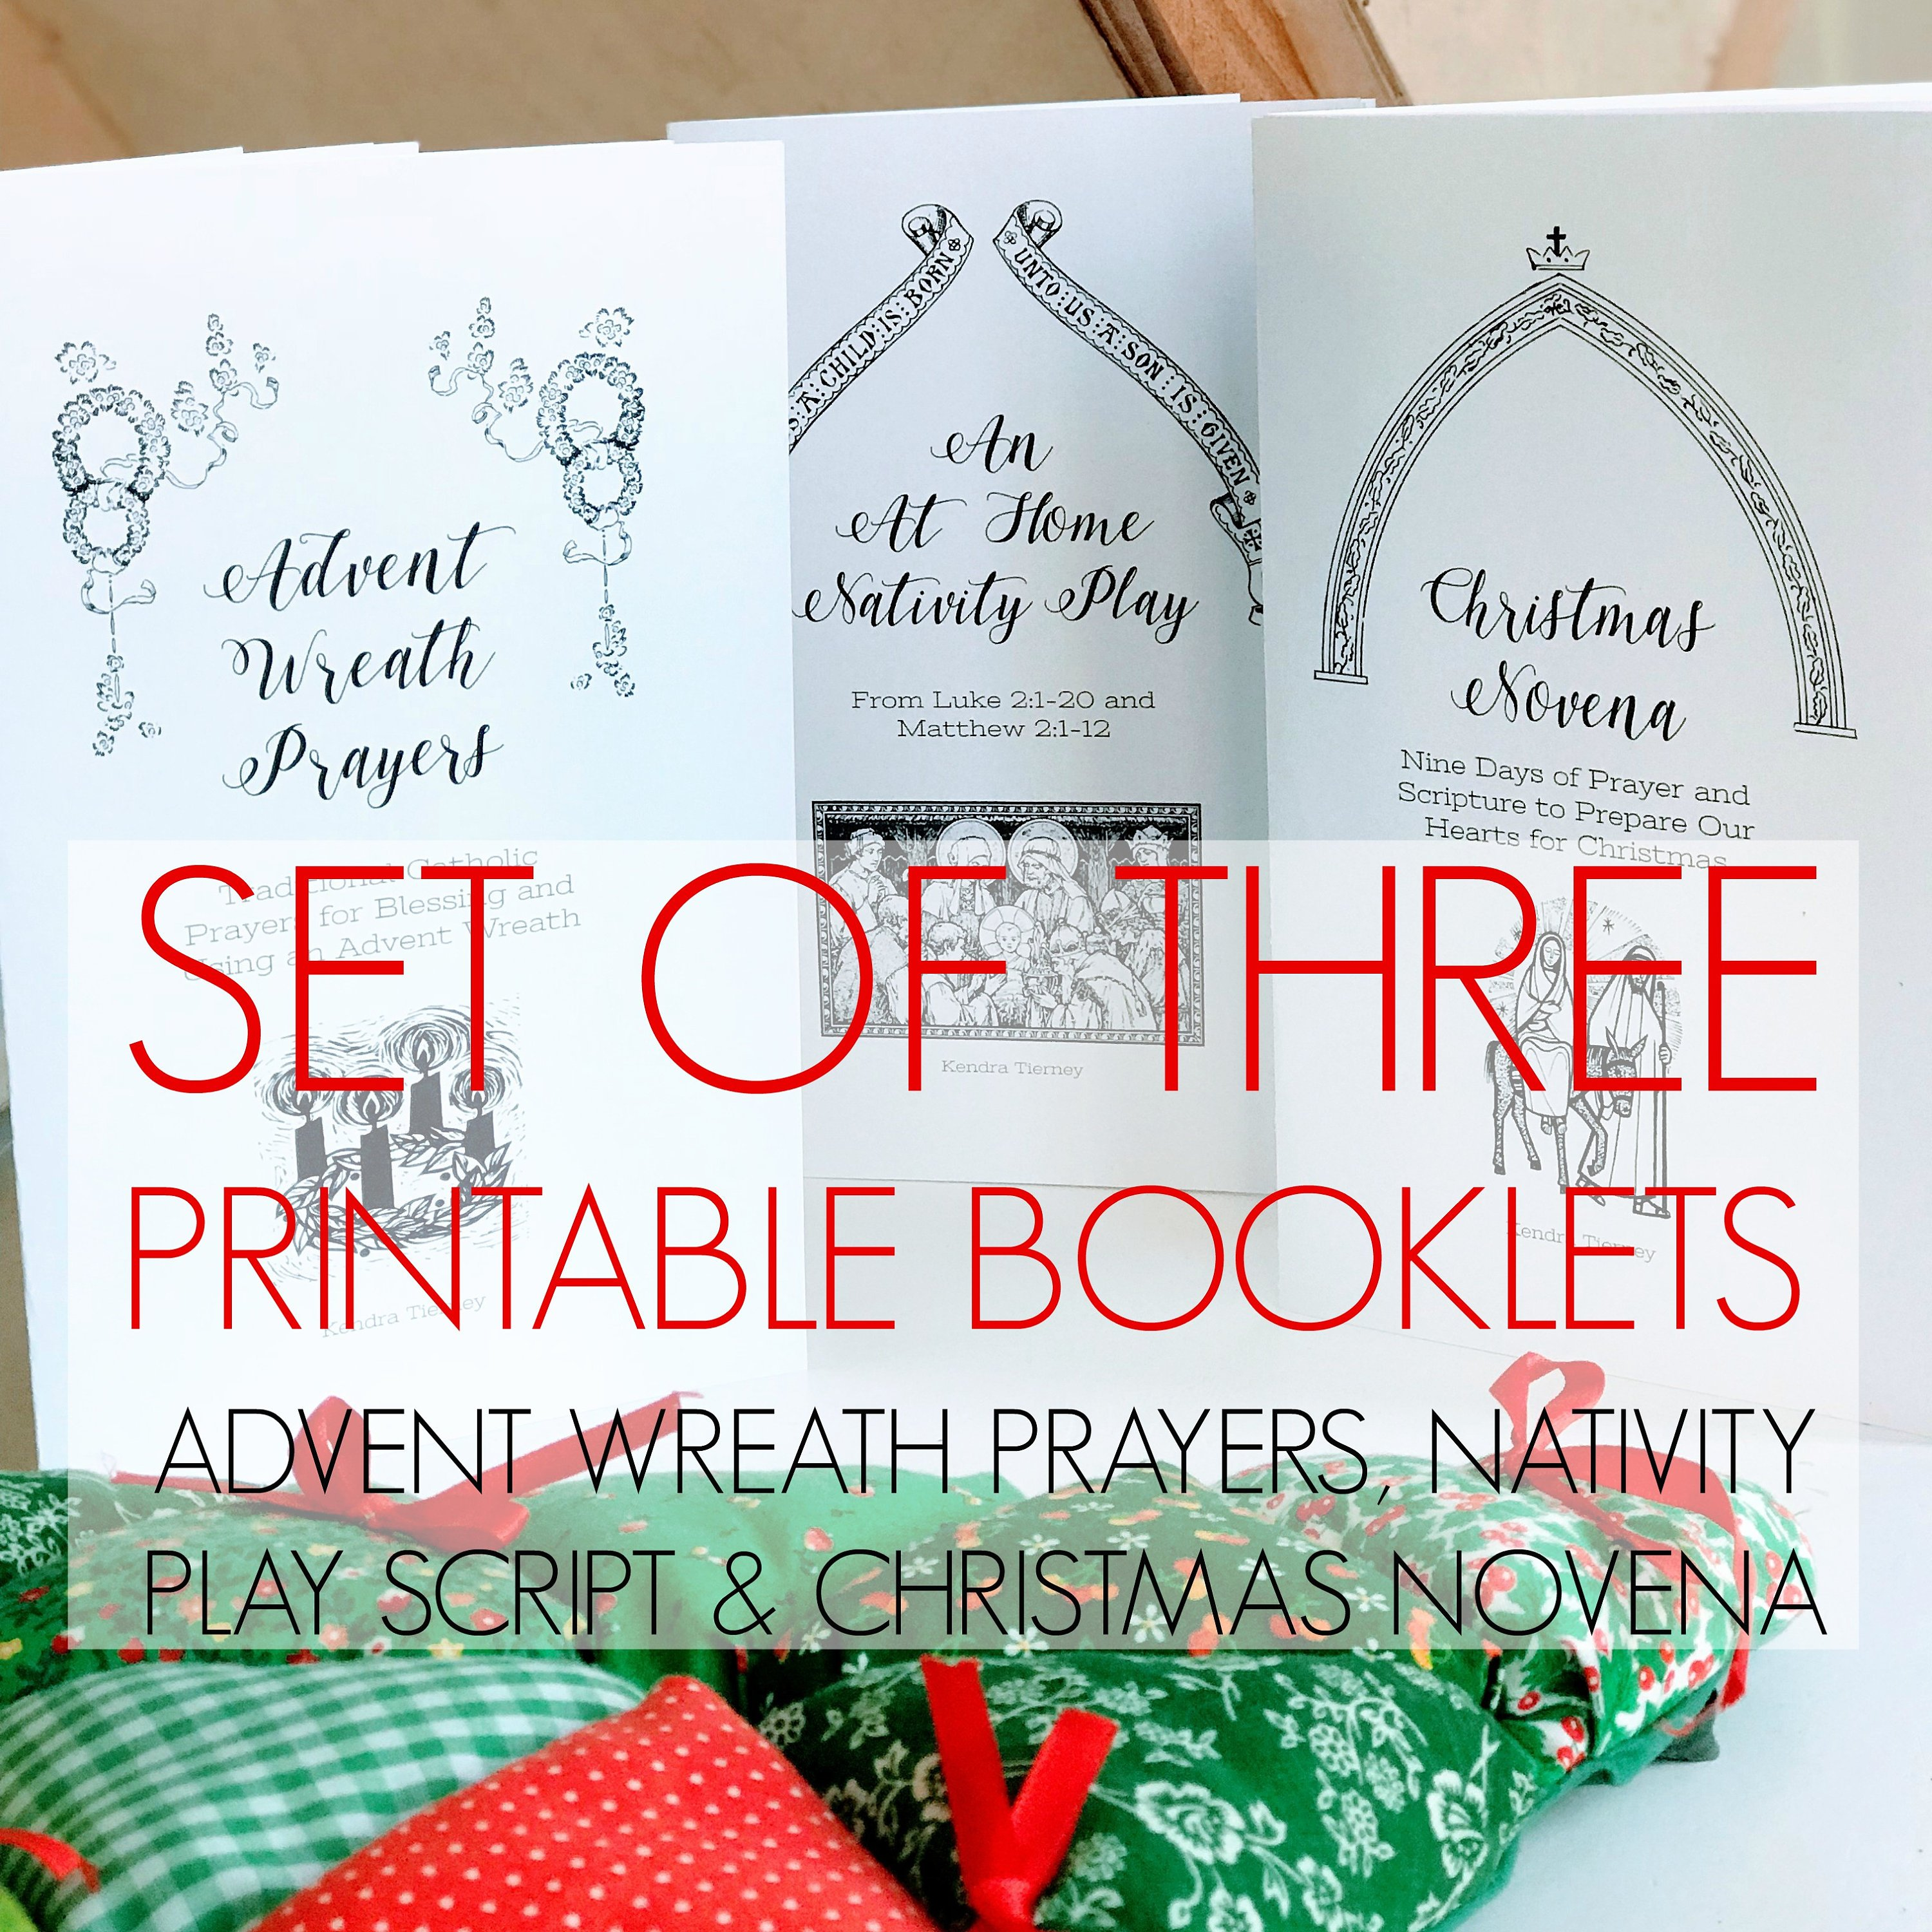 image relating to St Andrew Novena Printable referred to as Preset of A few Printable Booklets: Arrival Wreath Prayers, Xmas Novena, Nativity Participate in Script *electronic down load*